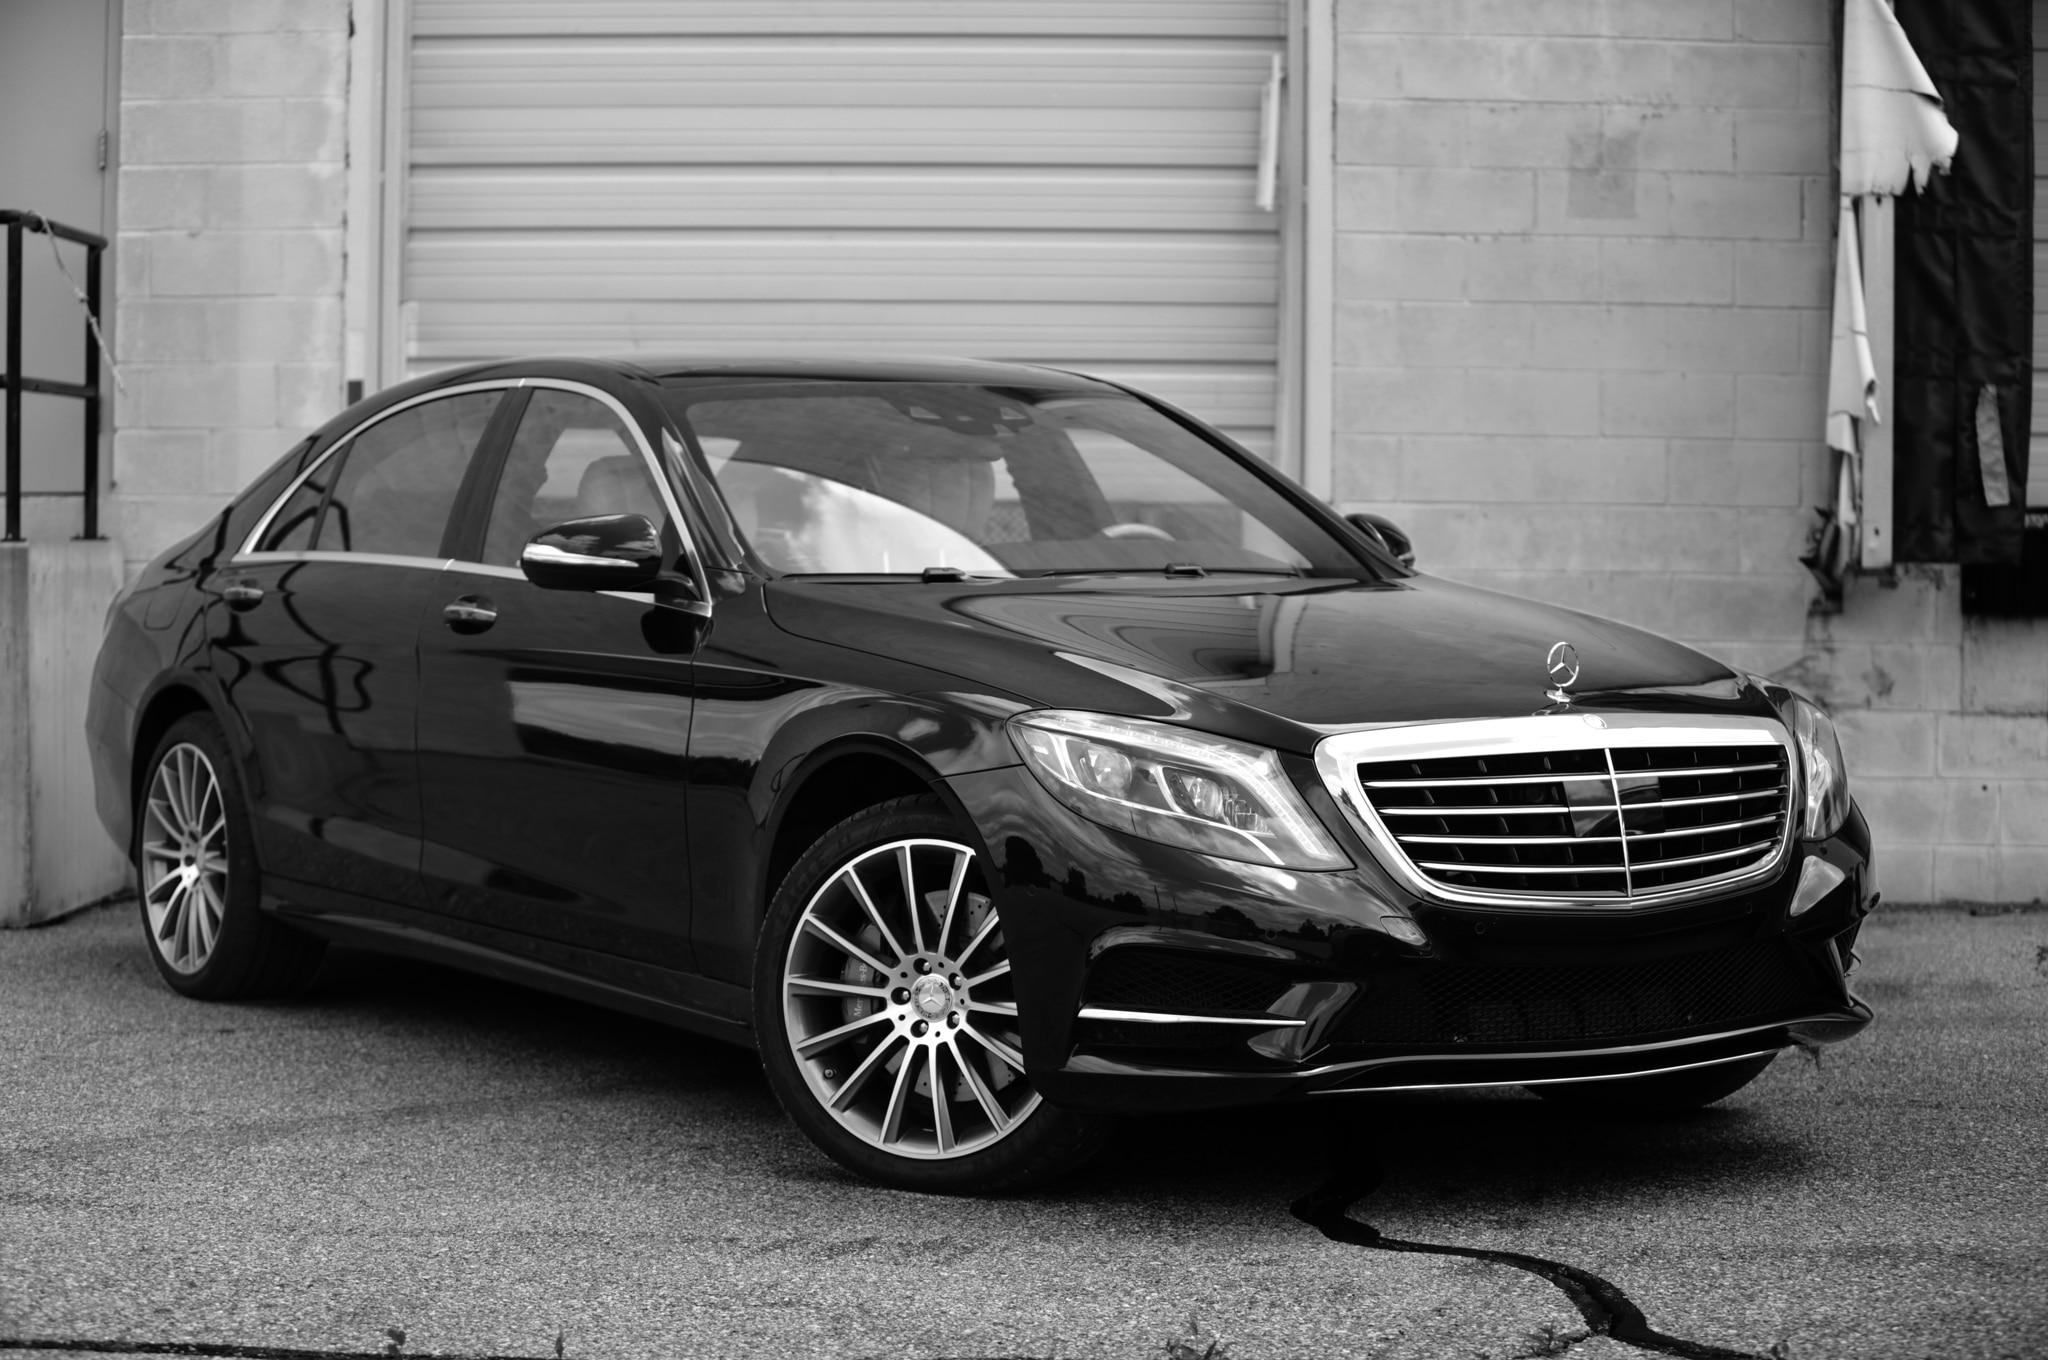 2015 mercedes s550 sedan images galleries with a bite. Black Bedroom Furniture Sets. Home Design Ideas